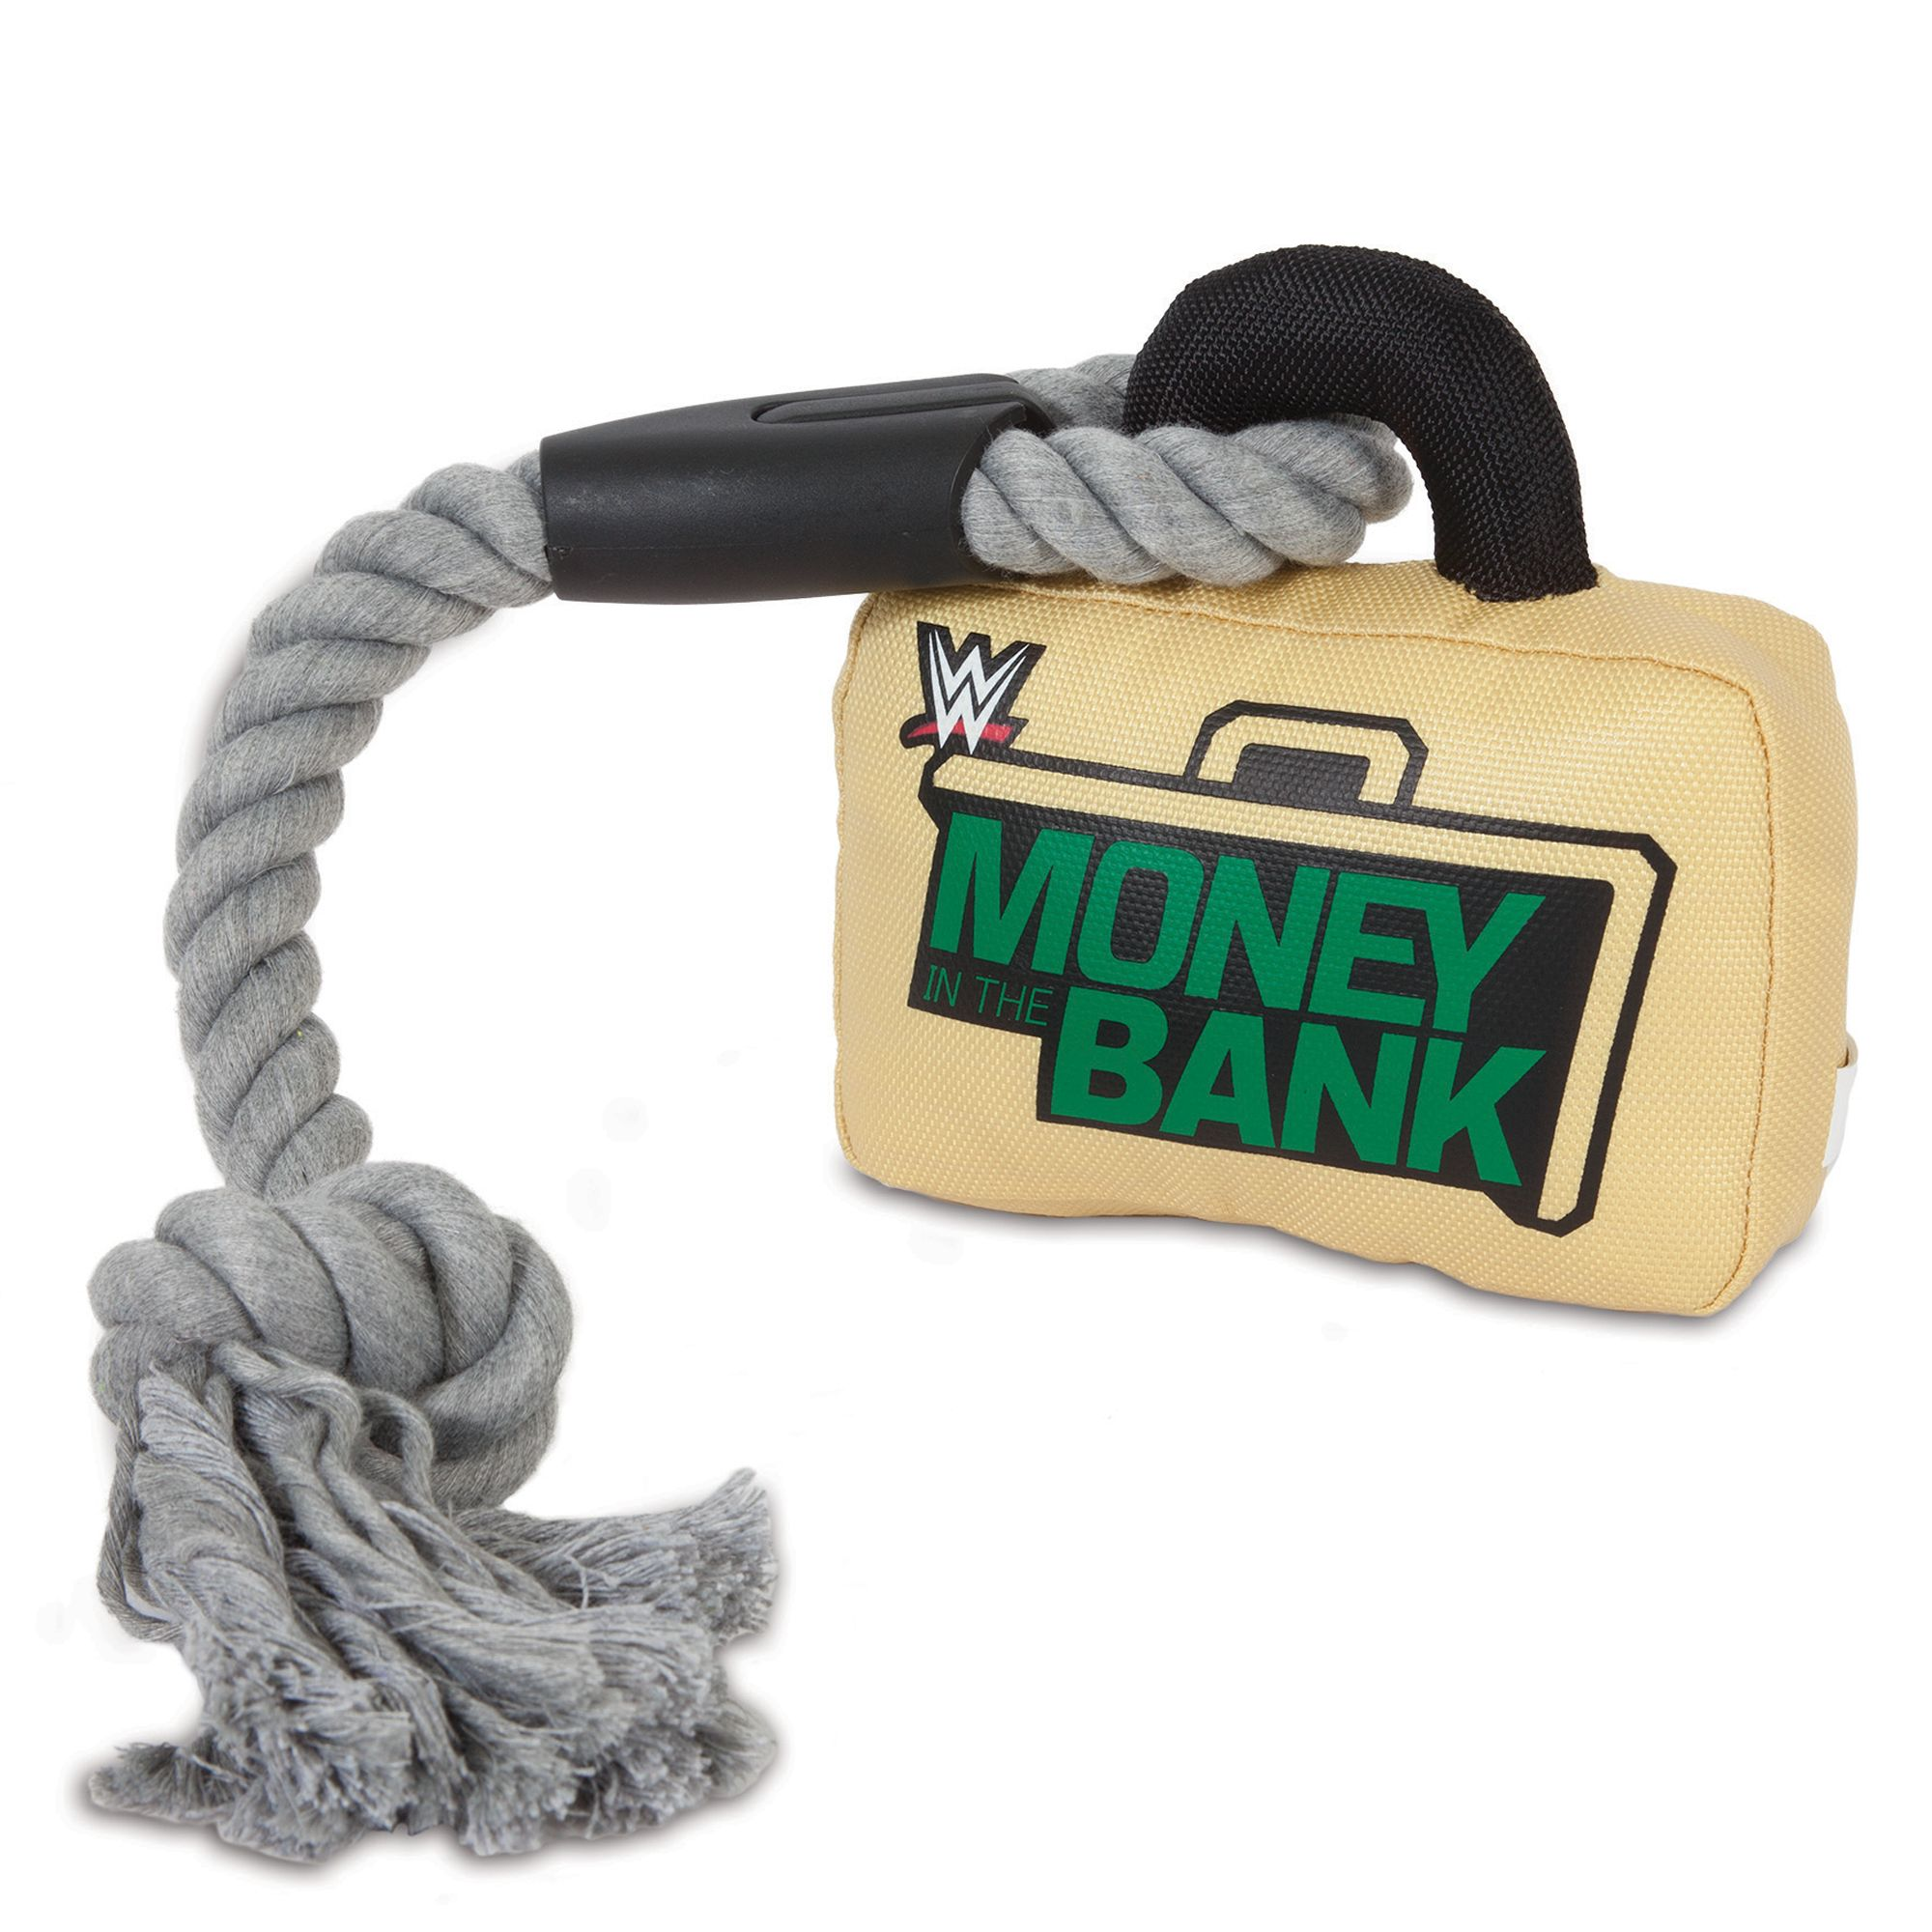 WWE Money Bank Tug Dog Toy 5259986